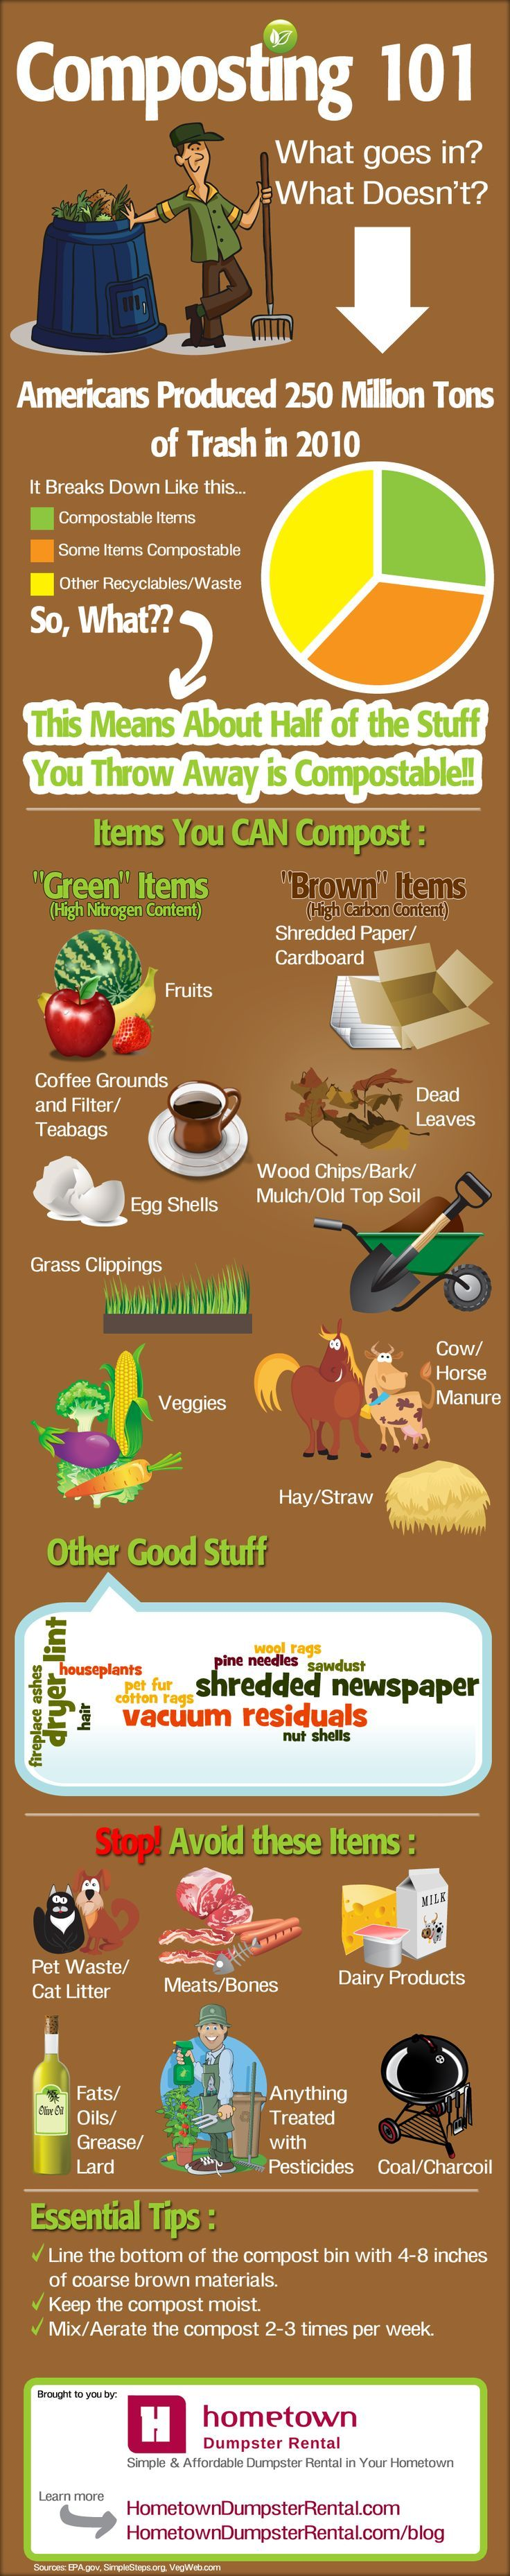 Great list of what goes in compost! • Find great home and garden articles in CharlottesvilleFamily magazine. The most recent digital edition can be found at at CharlottesvilleFamily.com.